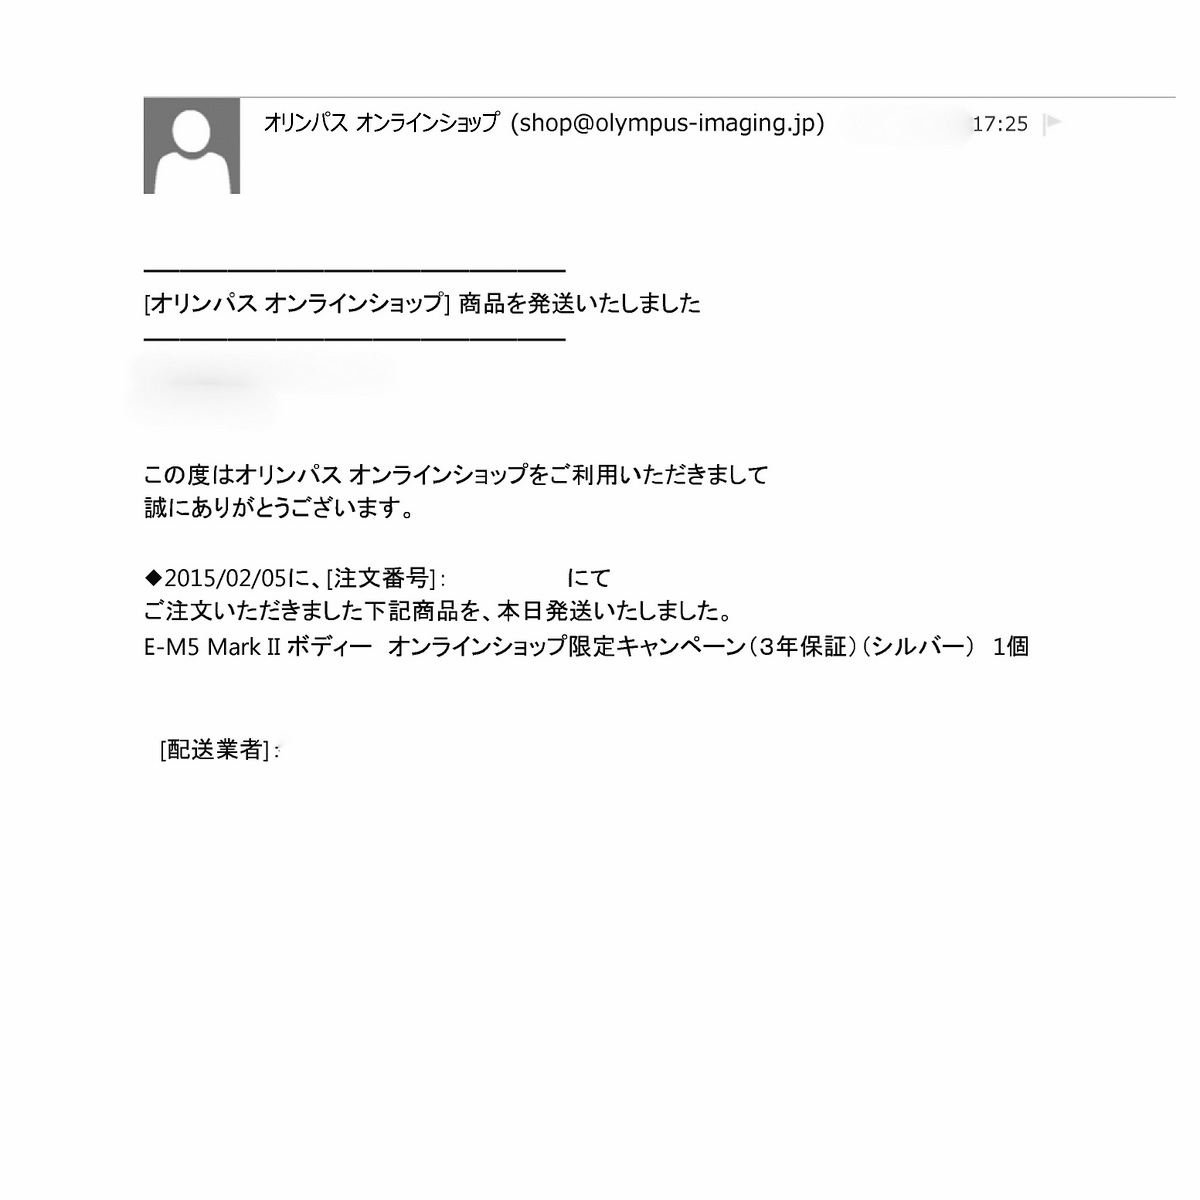 4-LR5_1-mail from oly-15